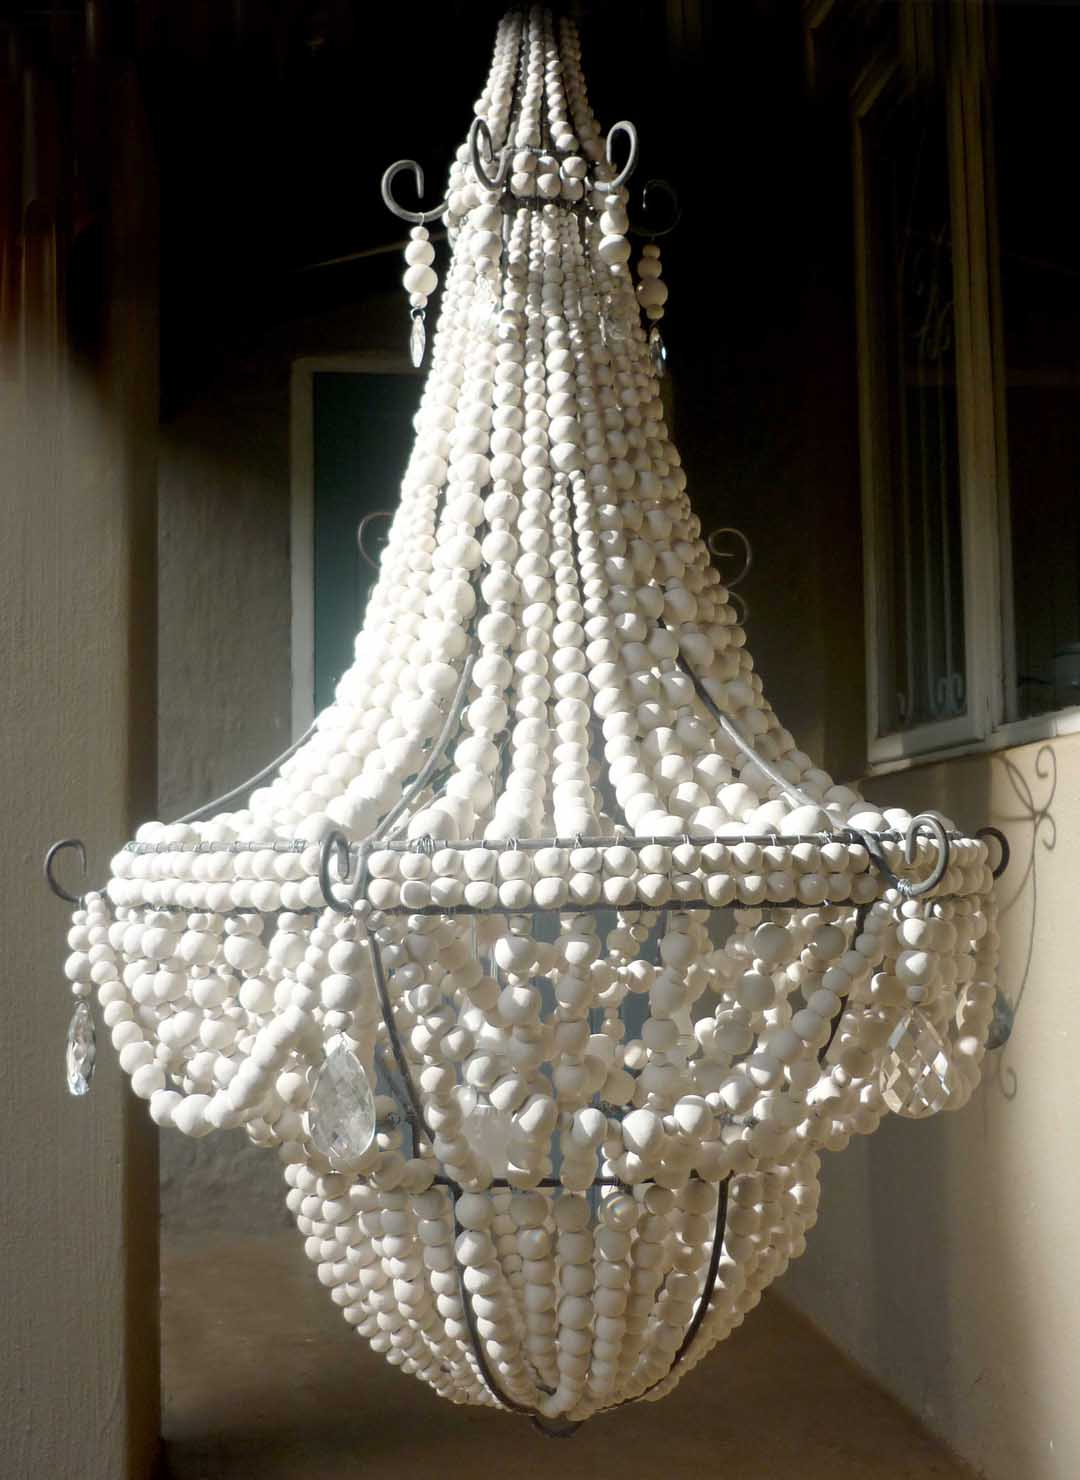 Hellooow handmade chandeliers combined with global trends and designs merewyn de heer packed up her advertising career and began her new journey with the birth of hellooow handmade arubaitofo Gallery